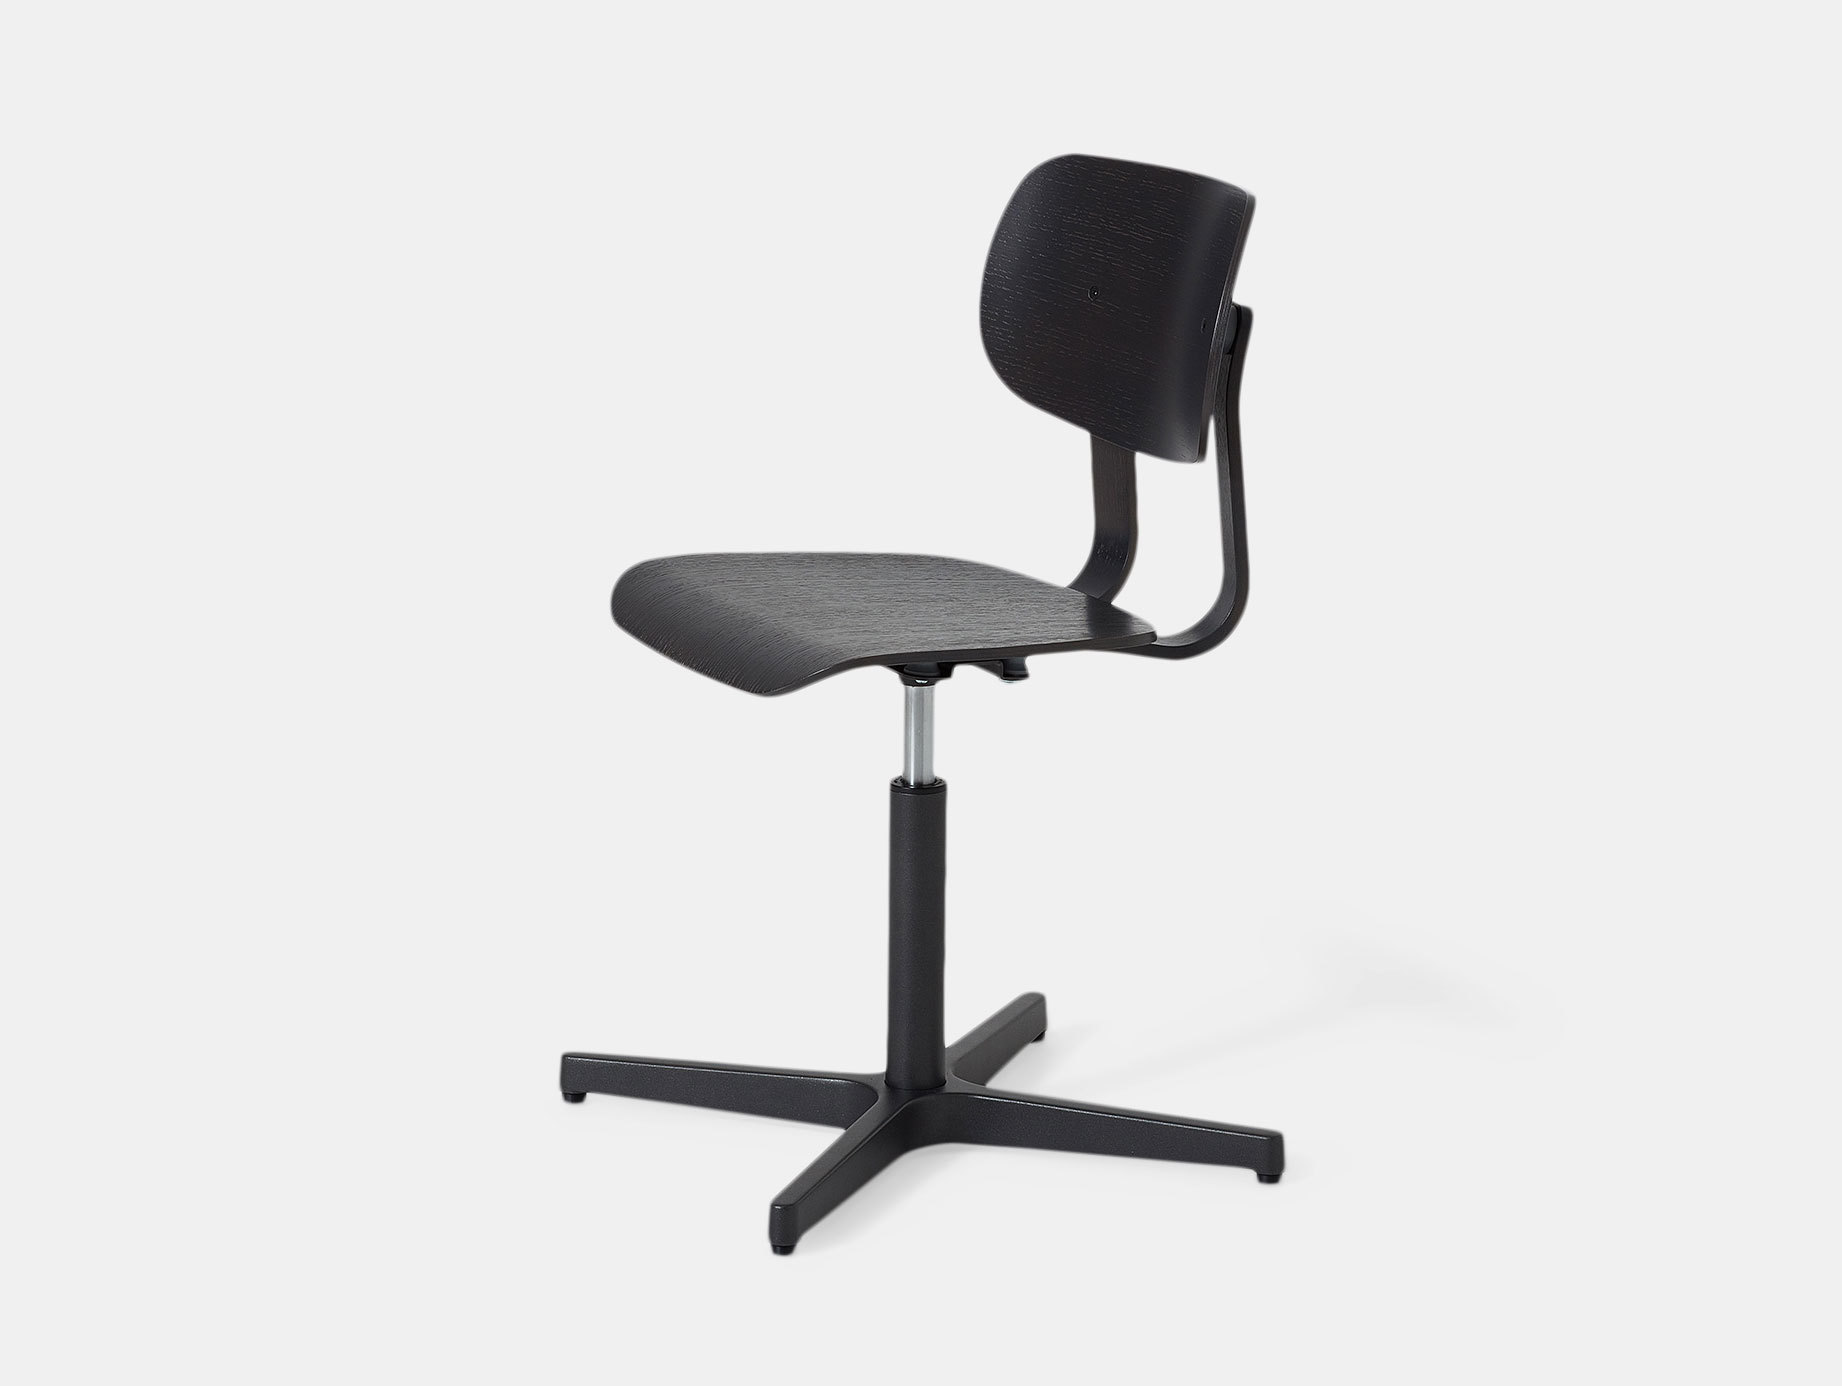 office chair pedestal covers for sale in sri lanka hd viaduct very good and proper black john tree